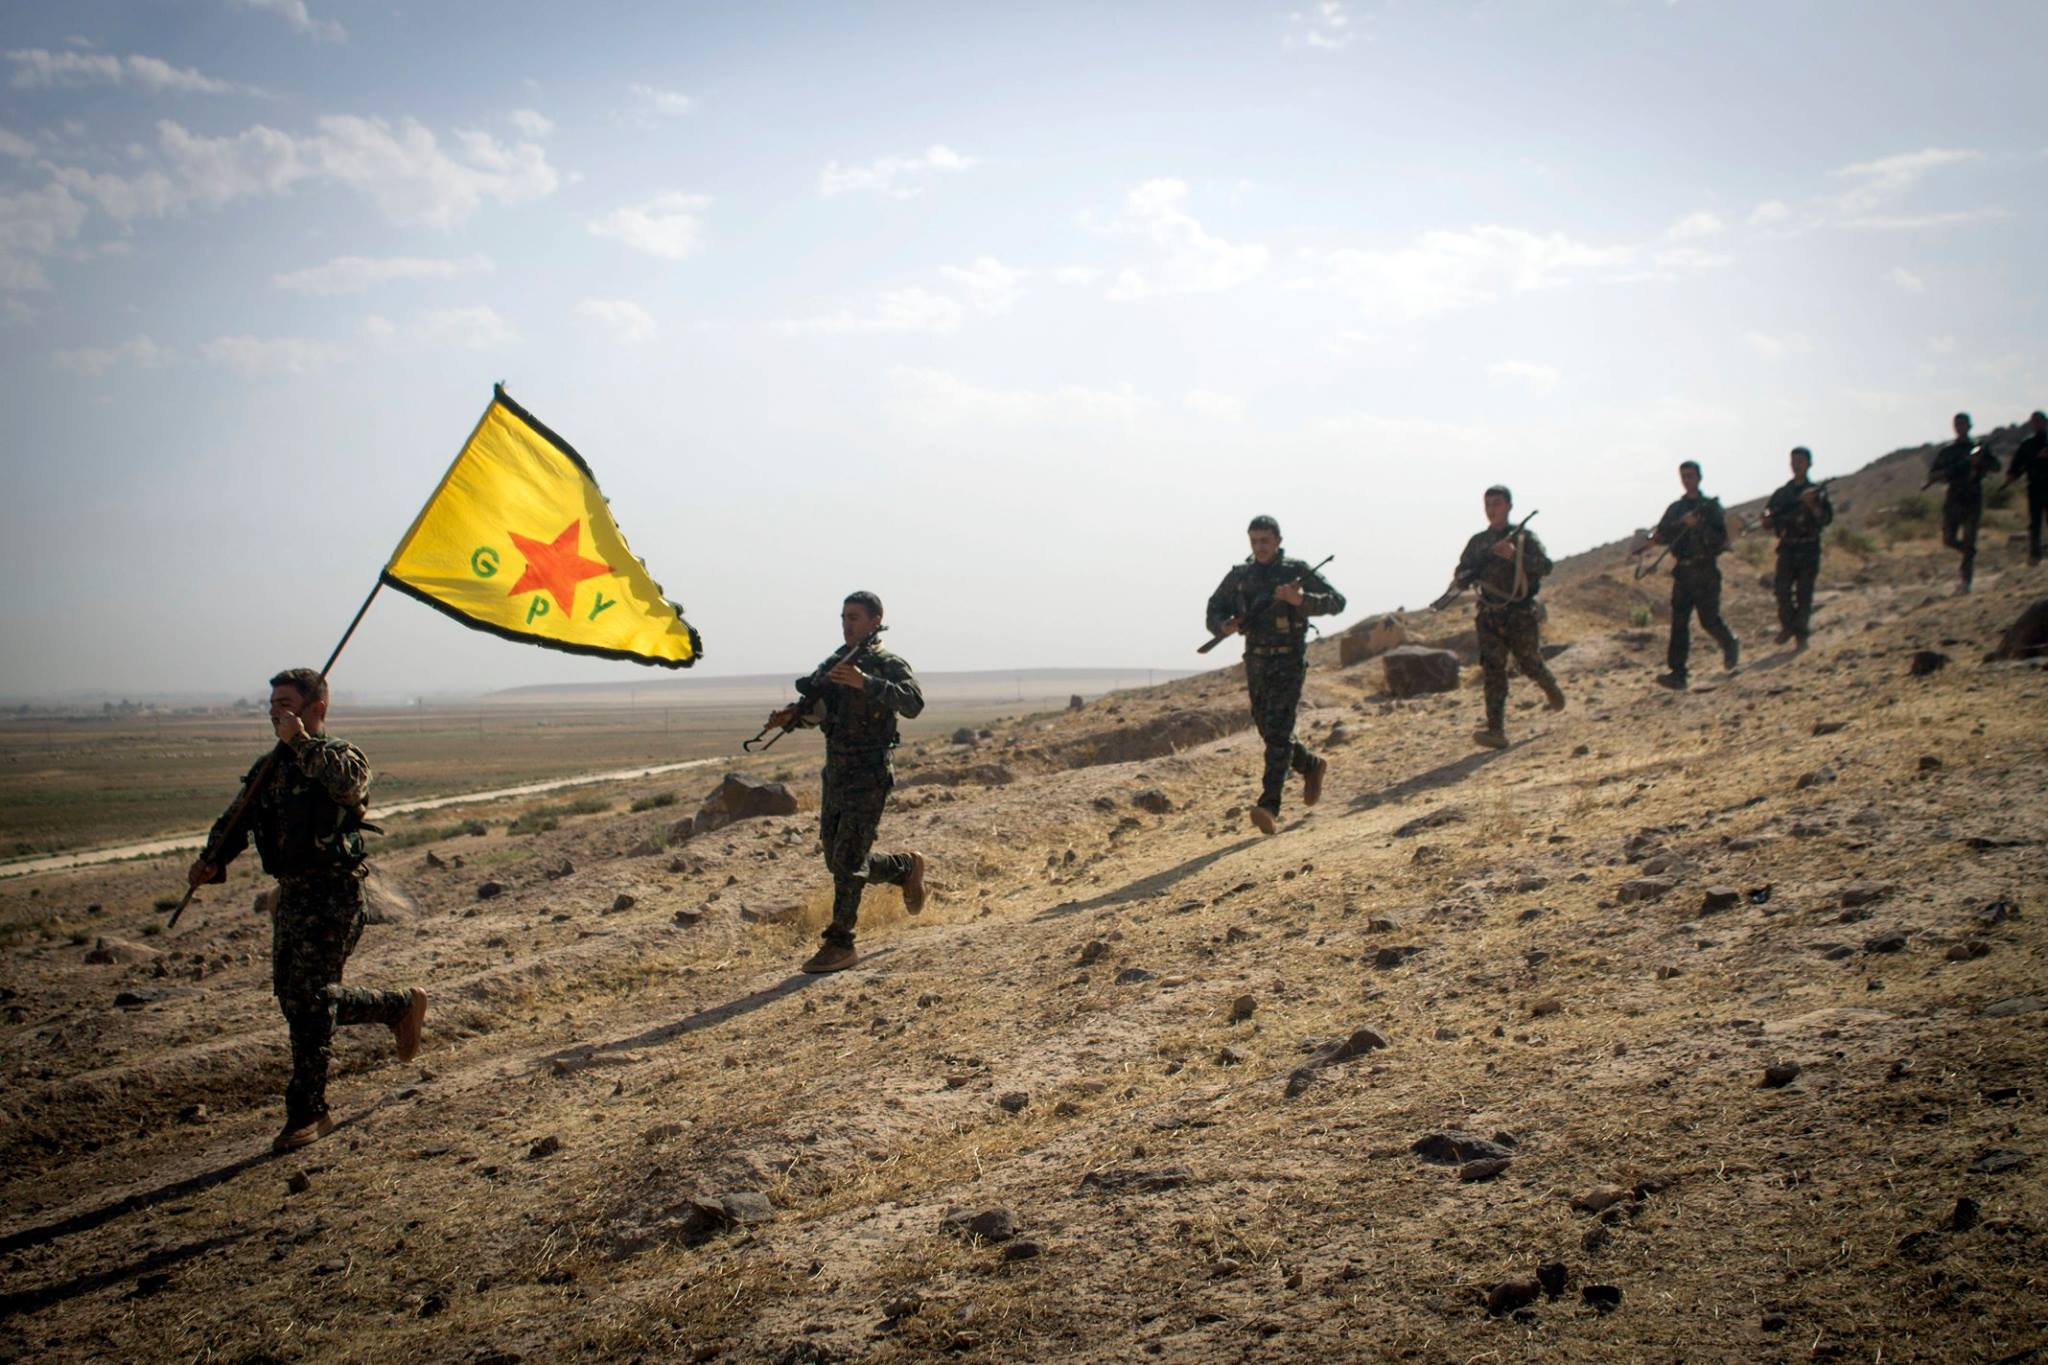 Damascus Government Rreached Agreement With YPG Over Afrin Area – Al-Mayadin TV